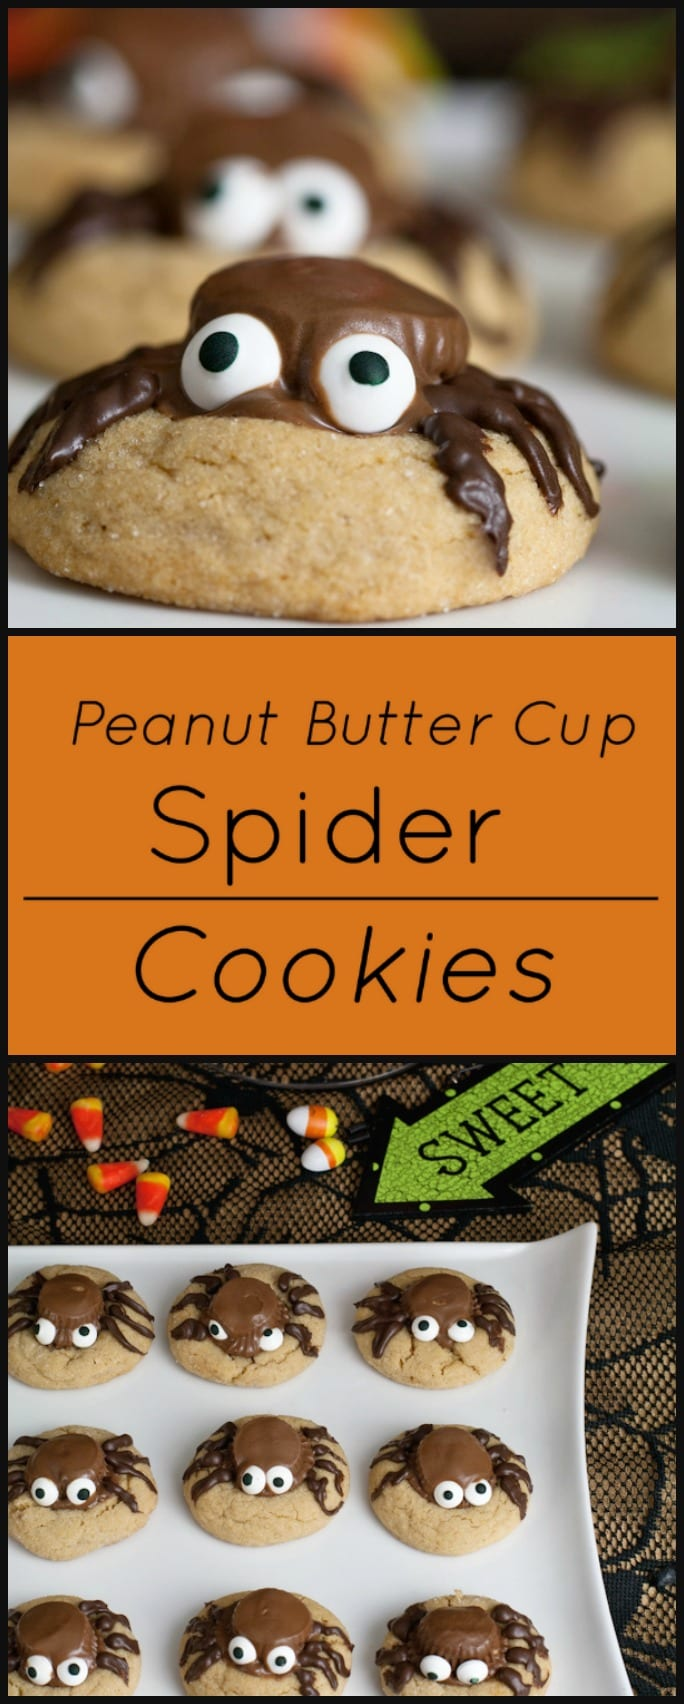 These Peanut Butter Cup Spider Cookies are so easy to make! Perfect for a Halloween Party!